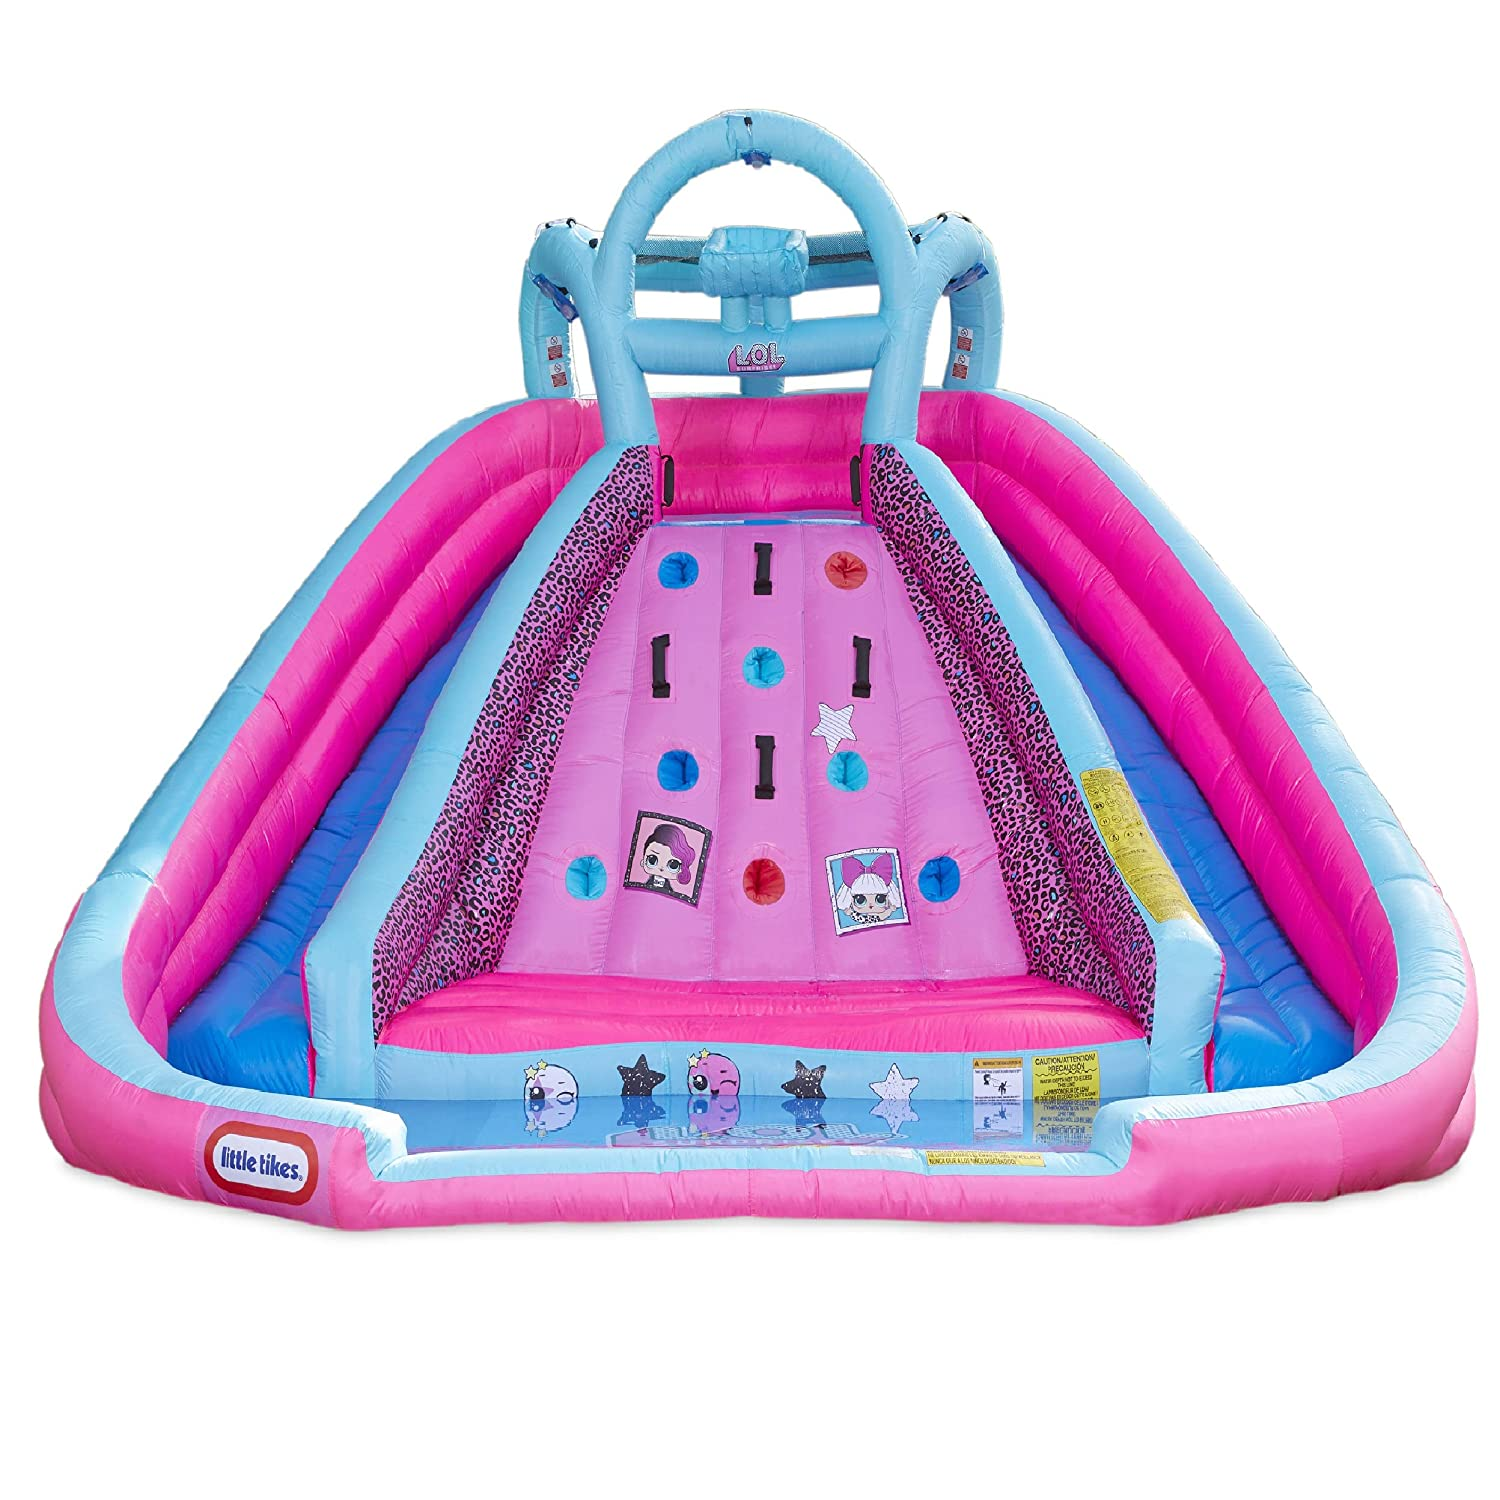 Amazon.com: Tobogán inflable Little Tikes con roca ...